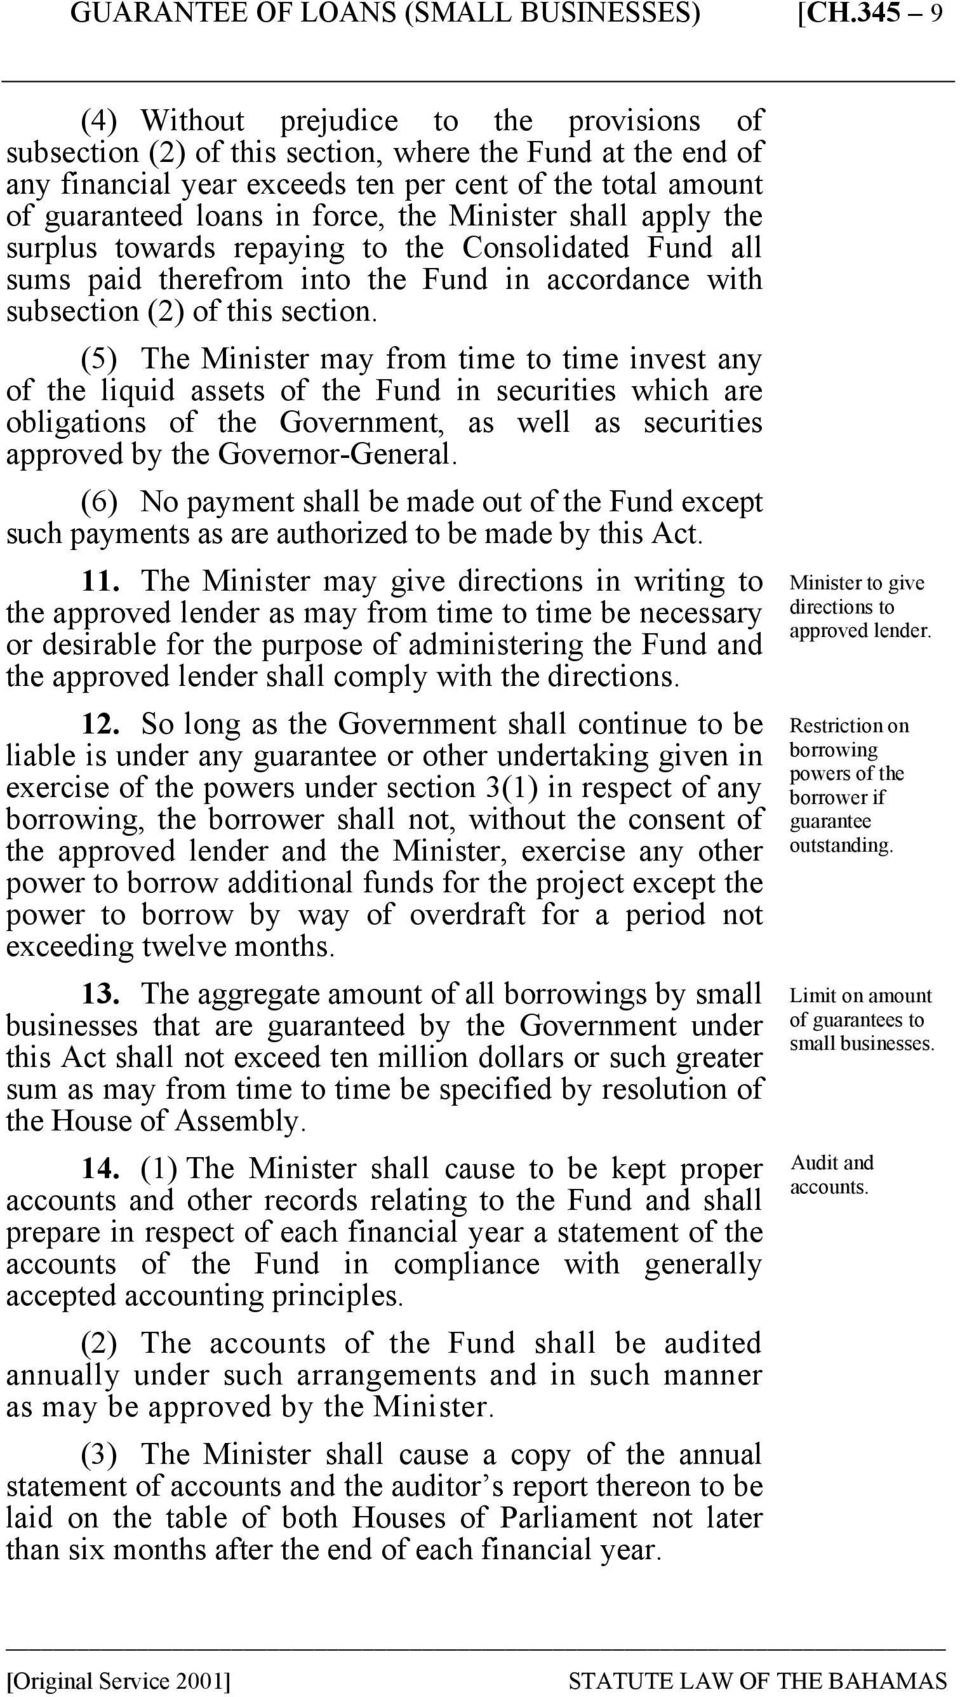 (5) The Minister may from time to time invest any of the liquid assets of the Fund in securities which are obligations of the Government, as well as securities approved by the Governor-General.